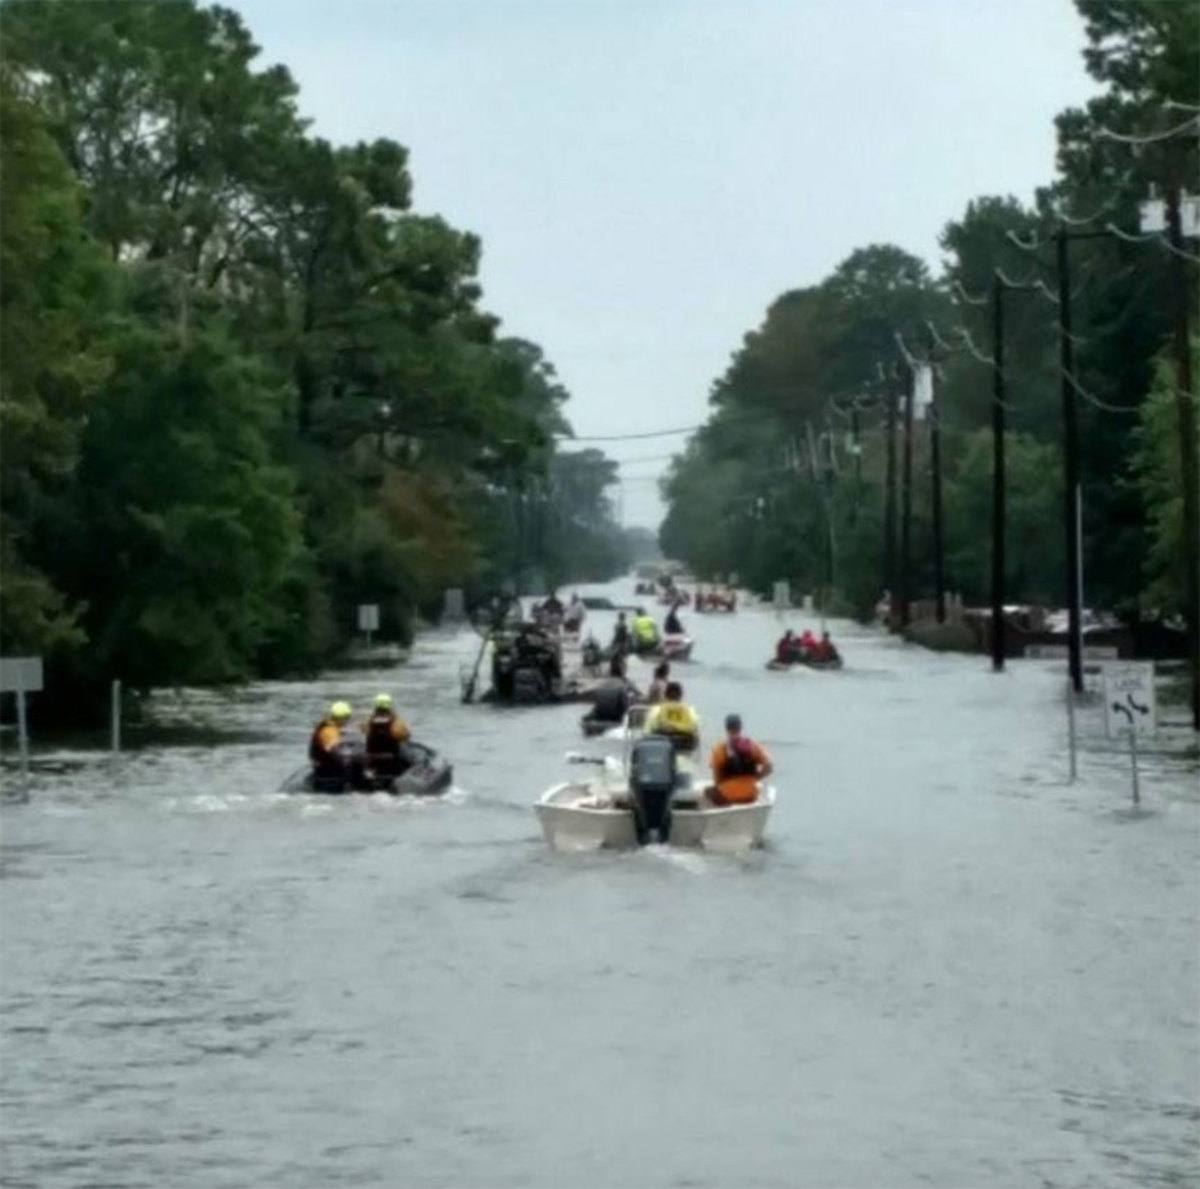 Kyle Holmes took this photo of boaters rescuing people from floods as Hurricane Harvey dumped more than 50 inches of rain in some parts of Houston.